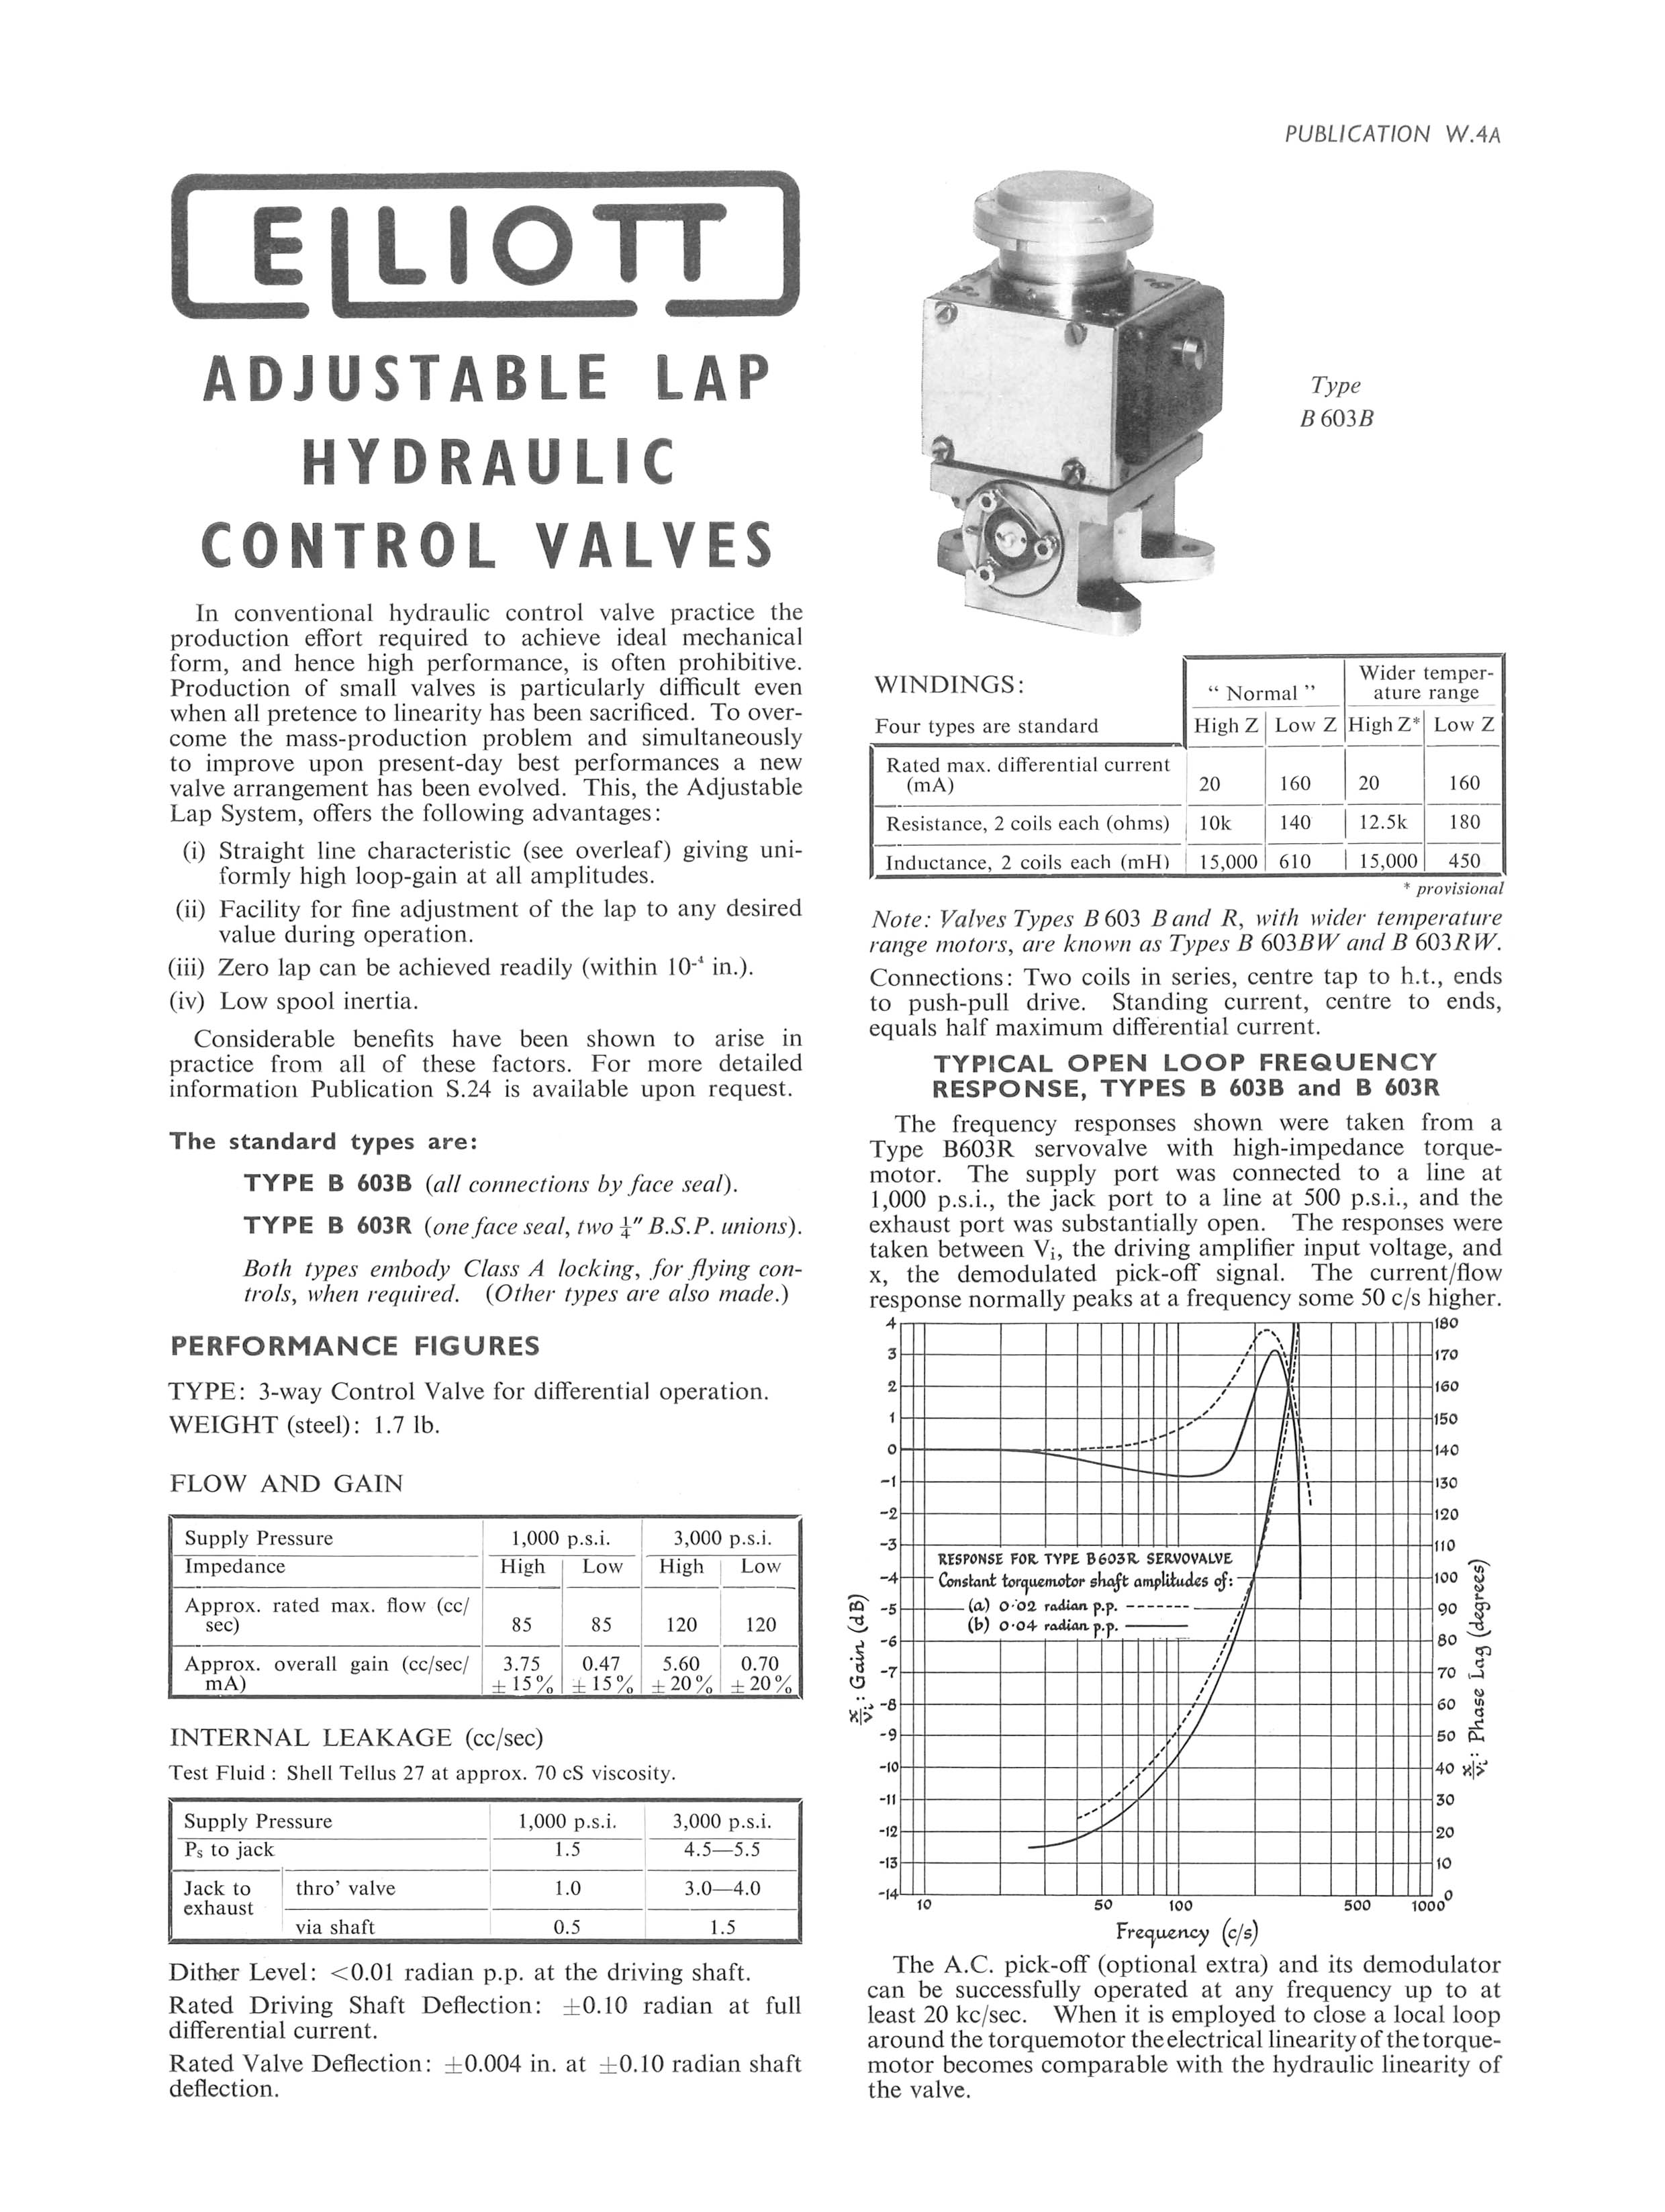 Adjustable-Lap Hydraulic Control Valves